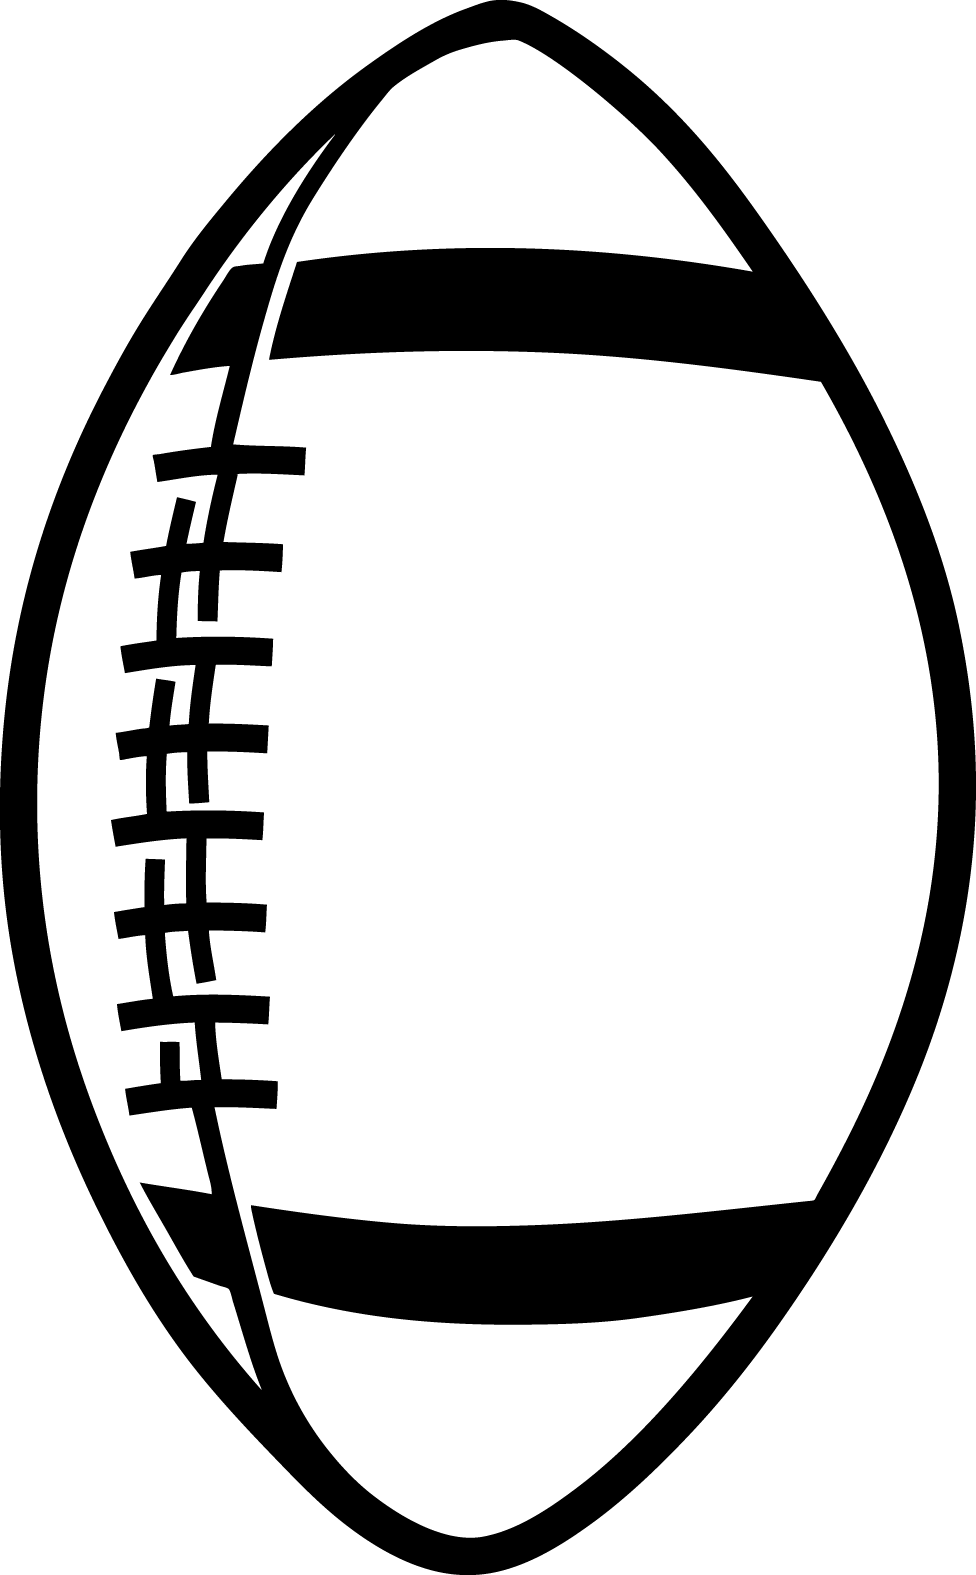 Football helmet black and white clipart